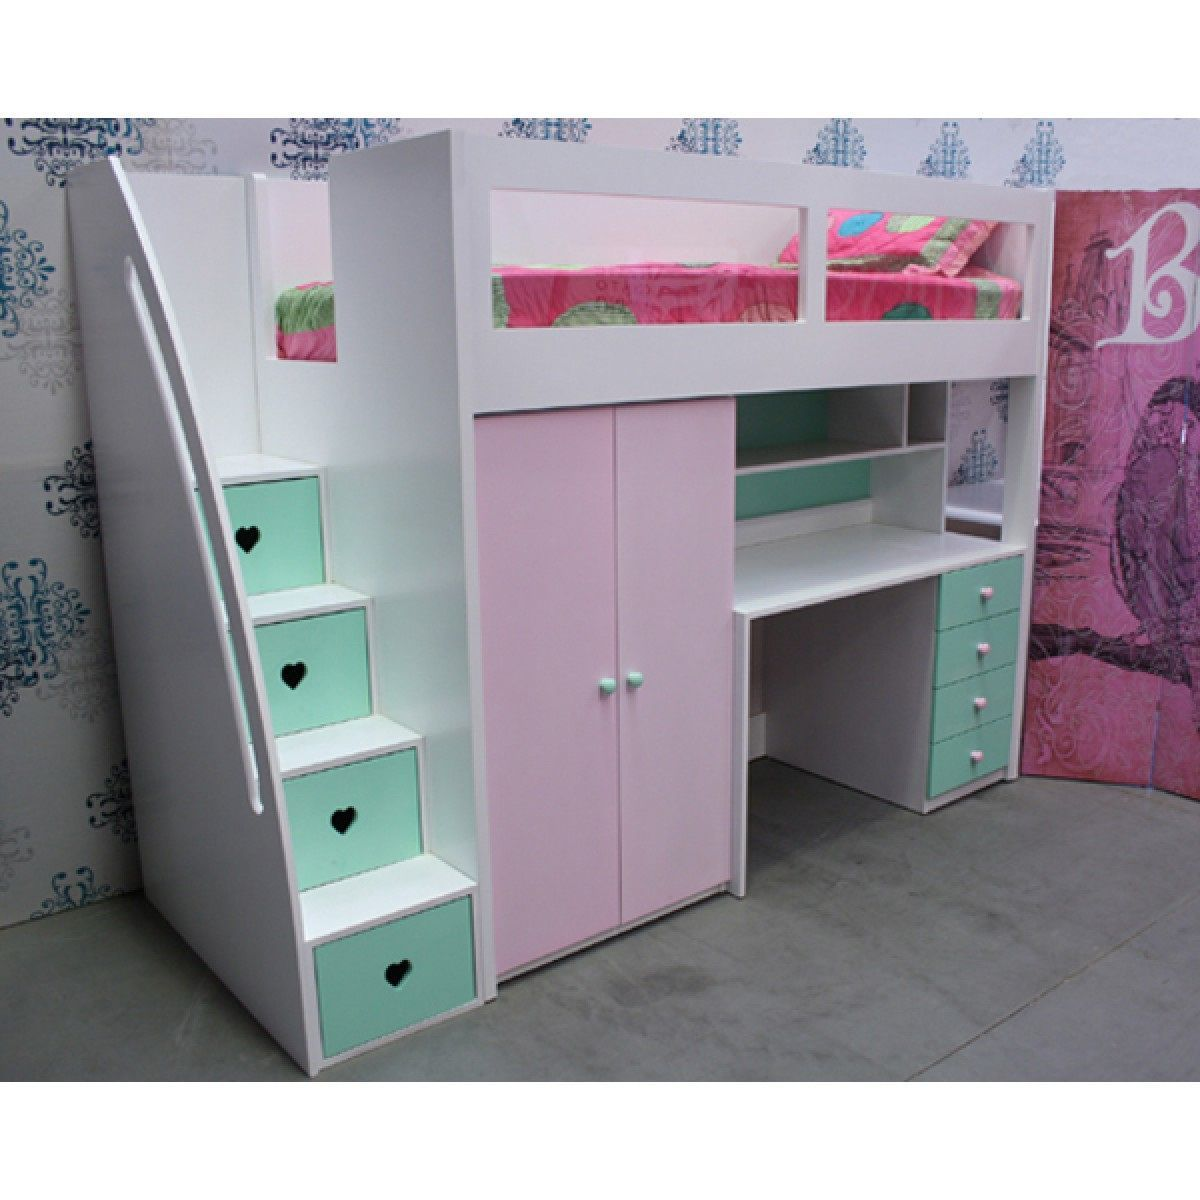 Mobby loft bed with stairs   Space Saver Bunk Bed  Bedroom Interior Designing Check more at